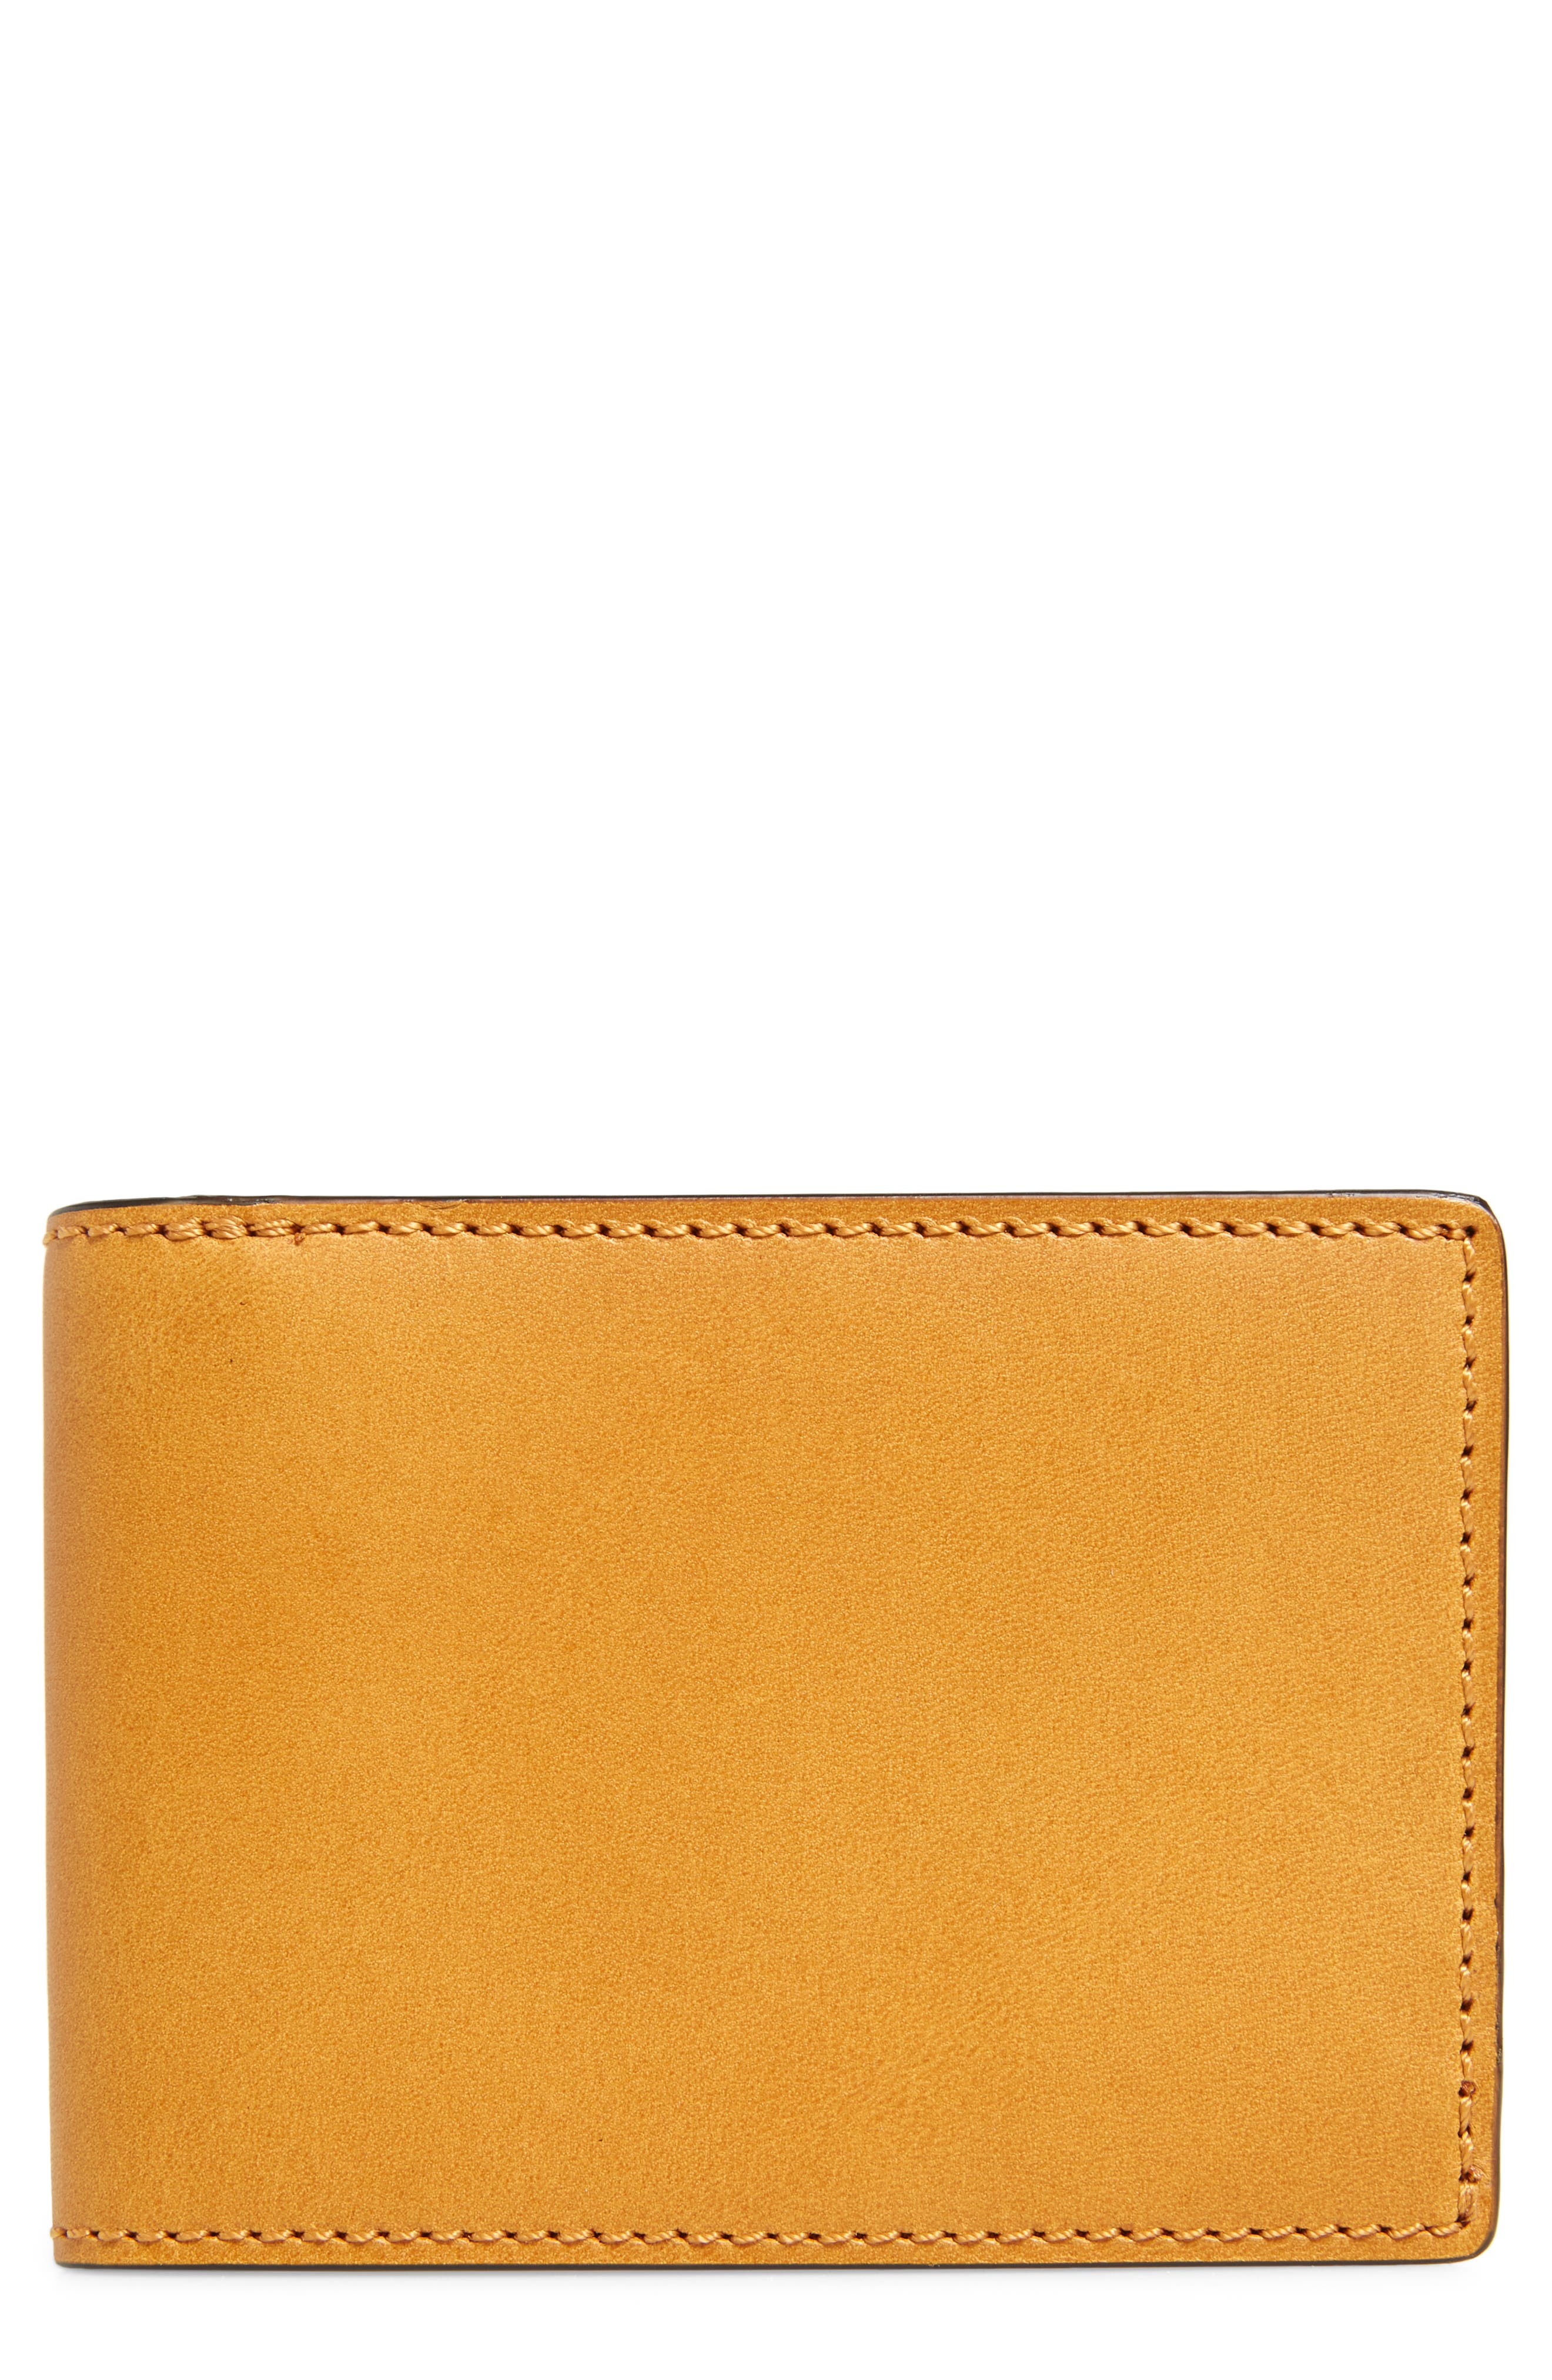 Italo Small Leather Bifold Wallet